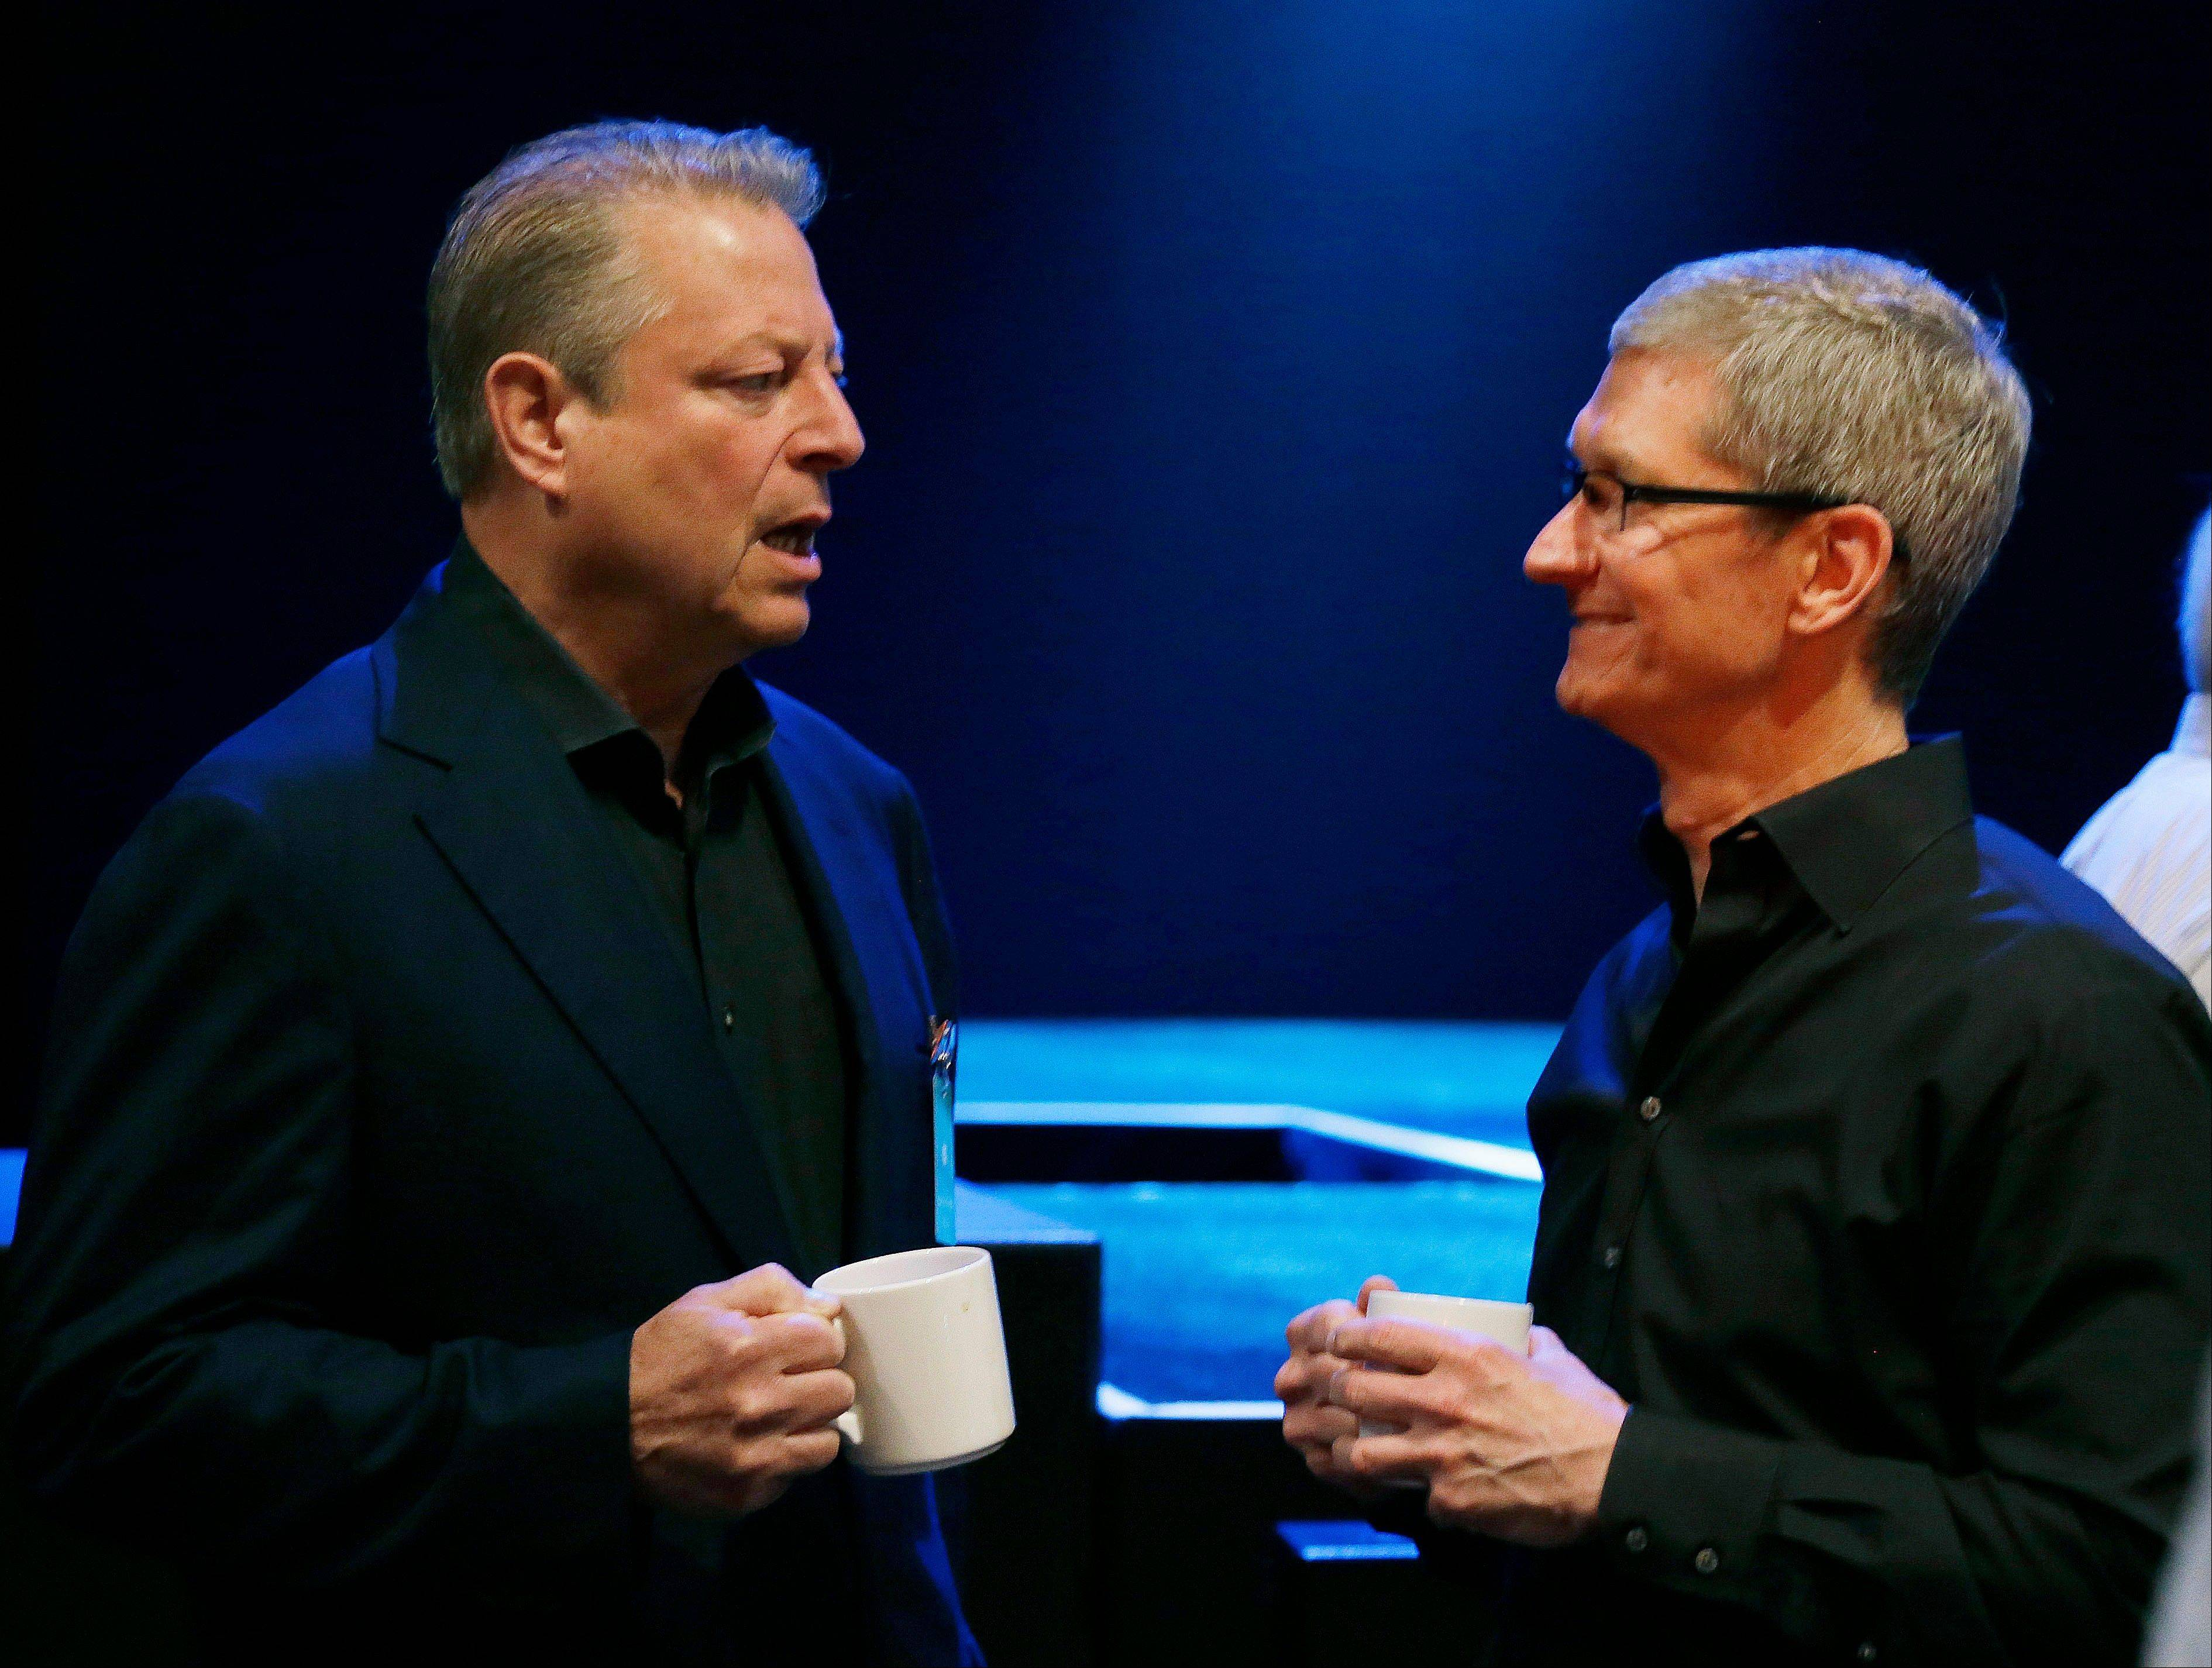 Apple CEO Tim Cook, right, talks with former Vice President Al Gore before giving the keynote address of the Apple Worldwide Developers Conference on Monday in San Francisco.